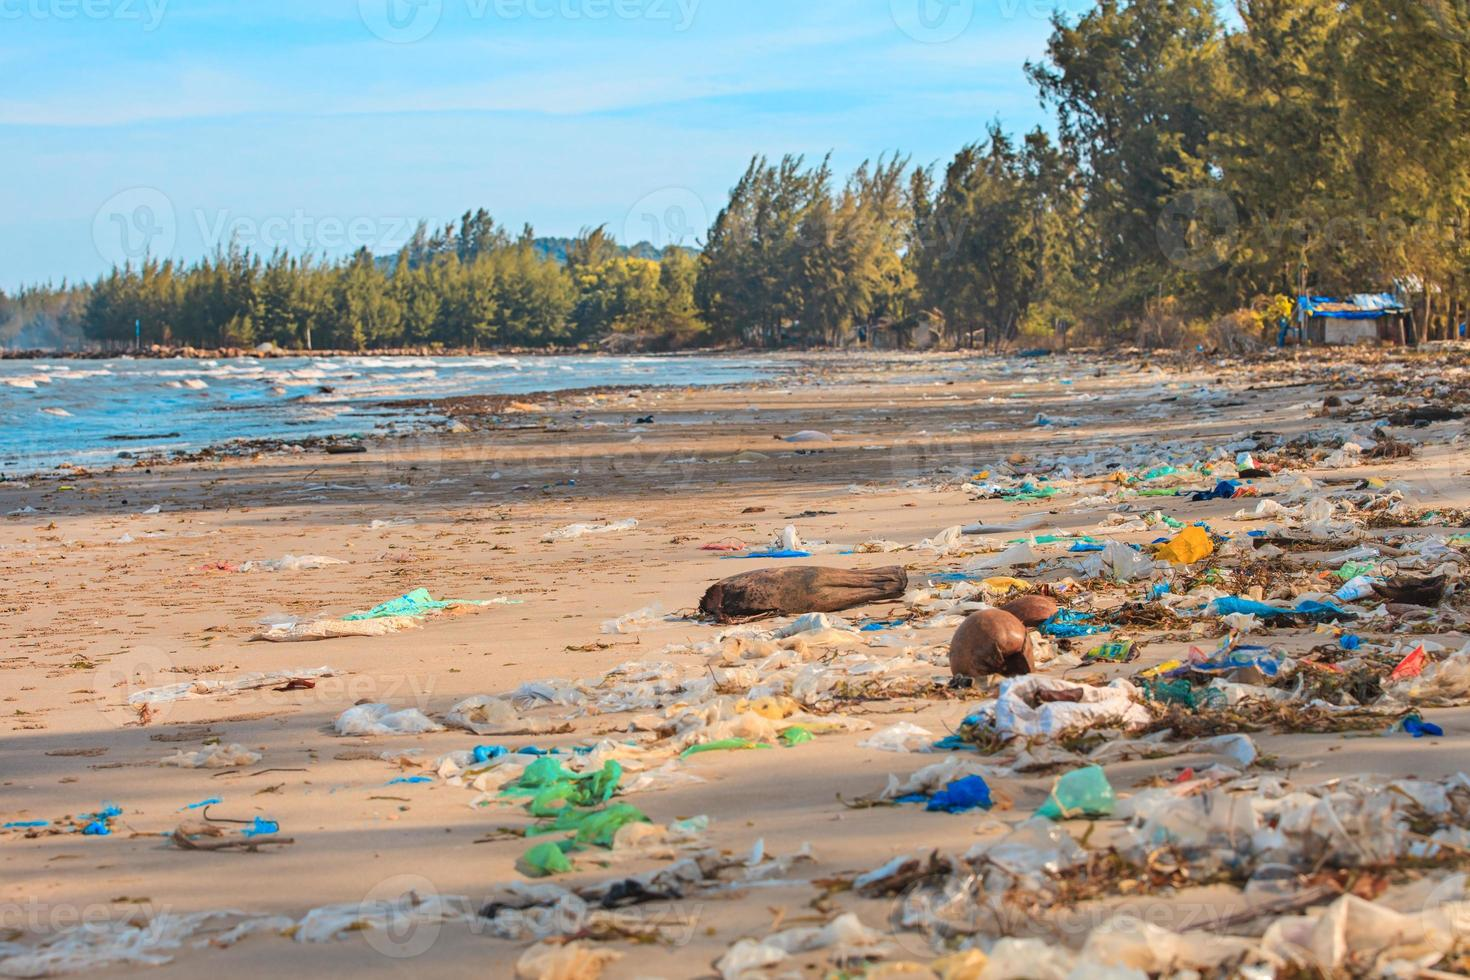 Terrible pollution of the ocean shore. photo